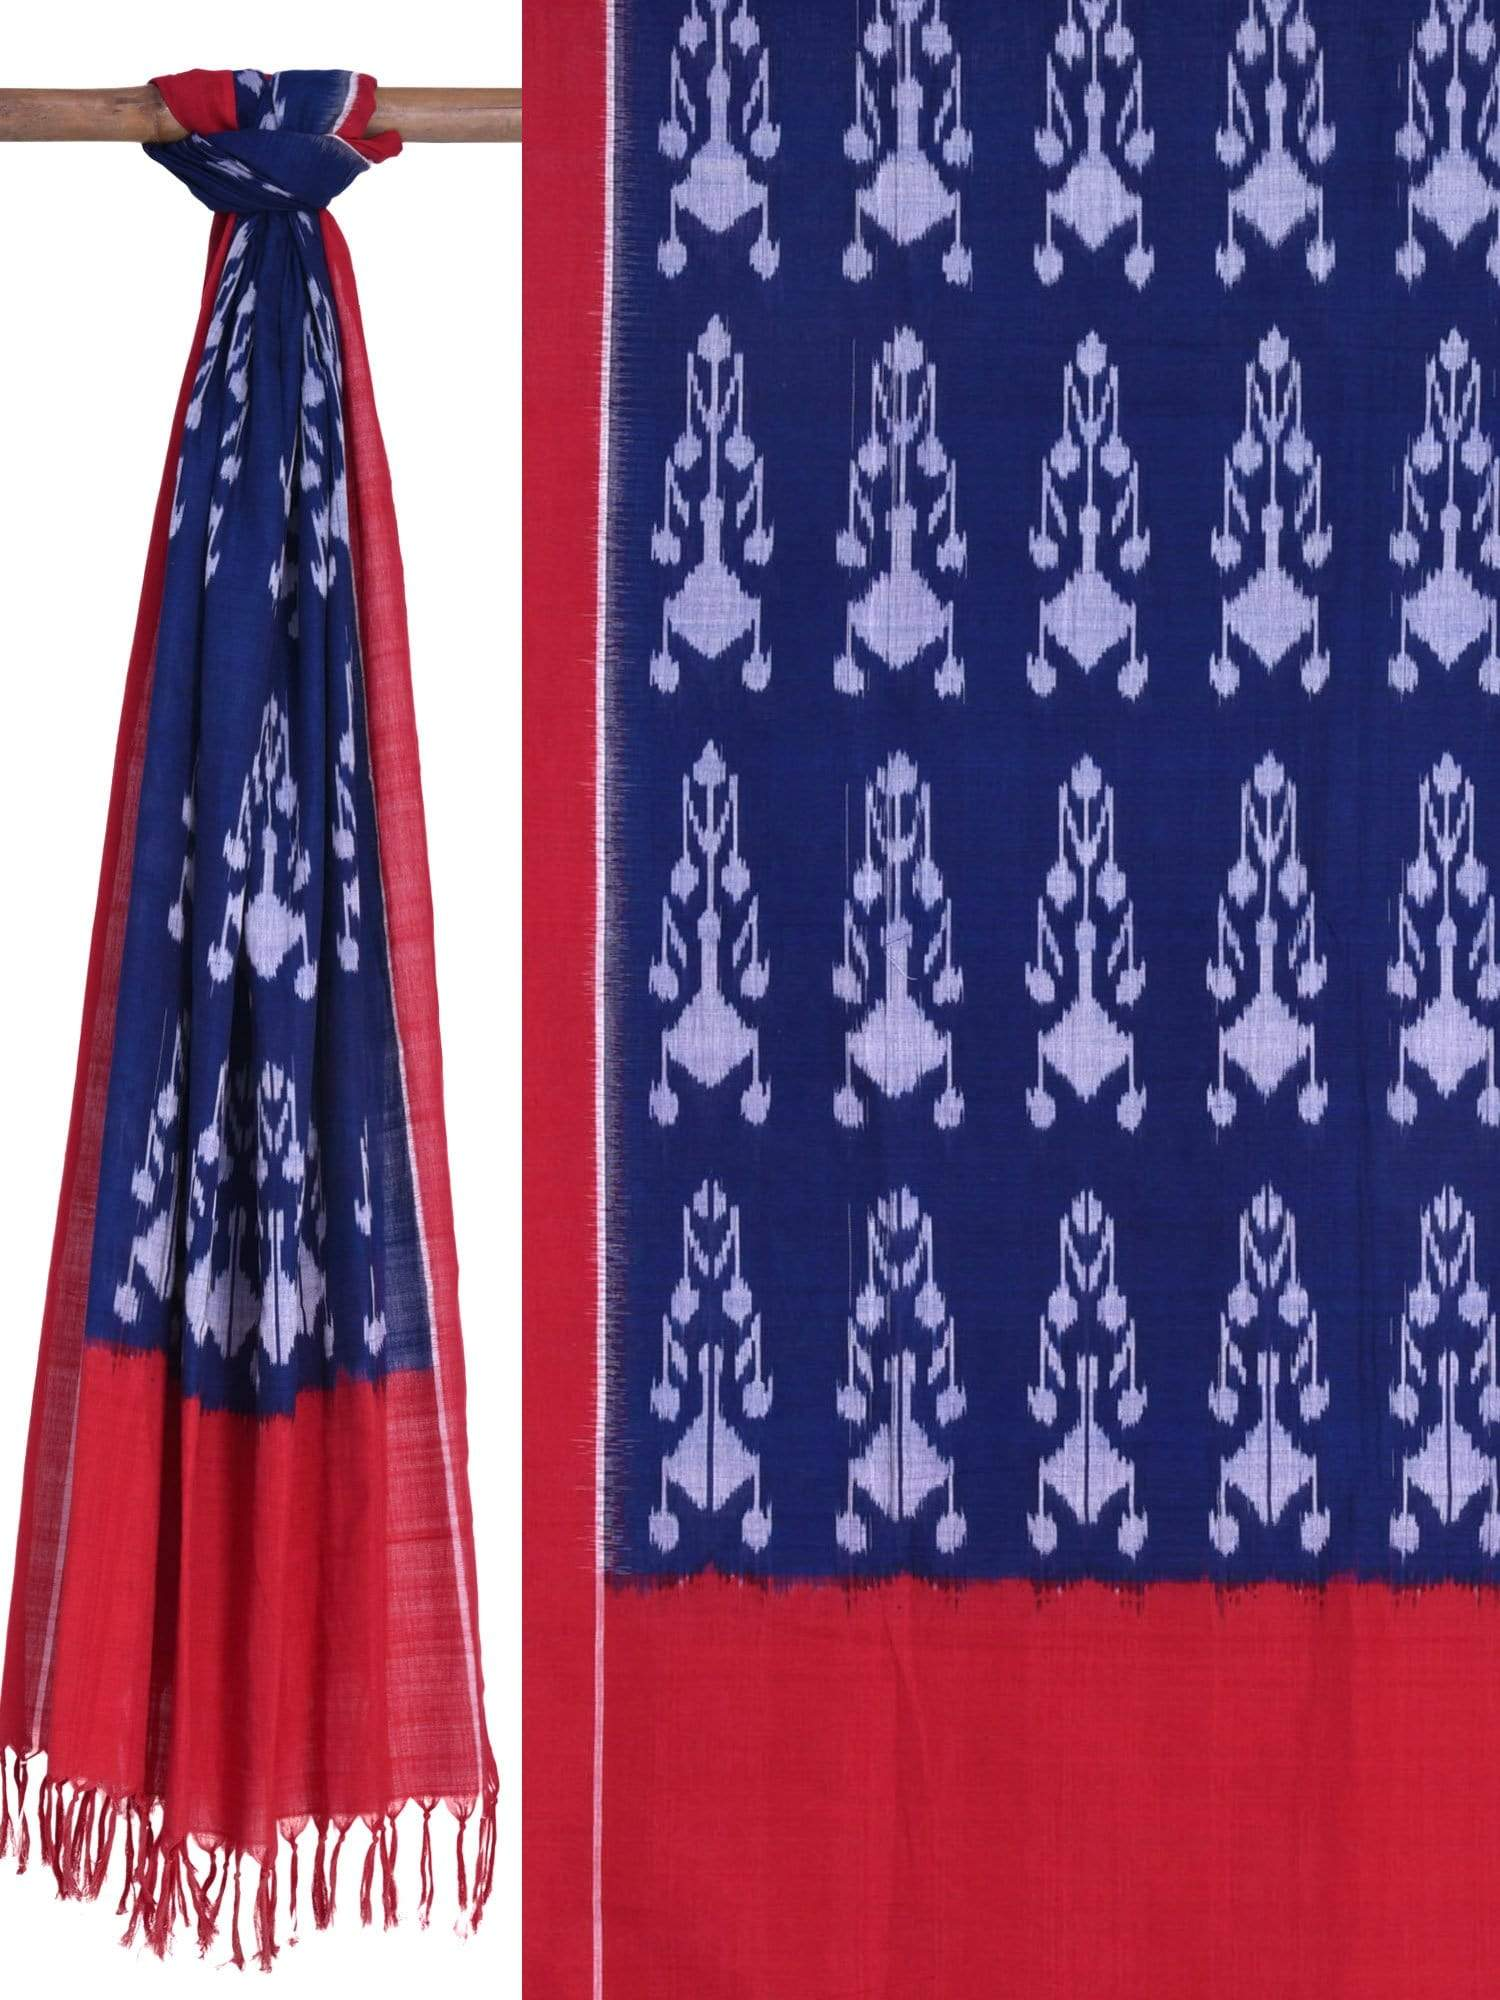 Blue and Red Pochampally Ikat Cotton Handloom Dupatta ds1558